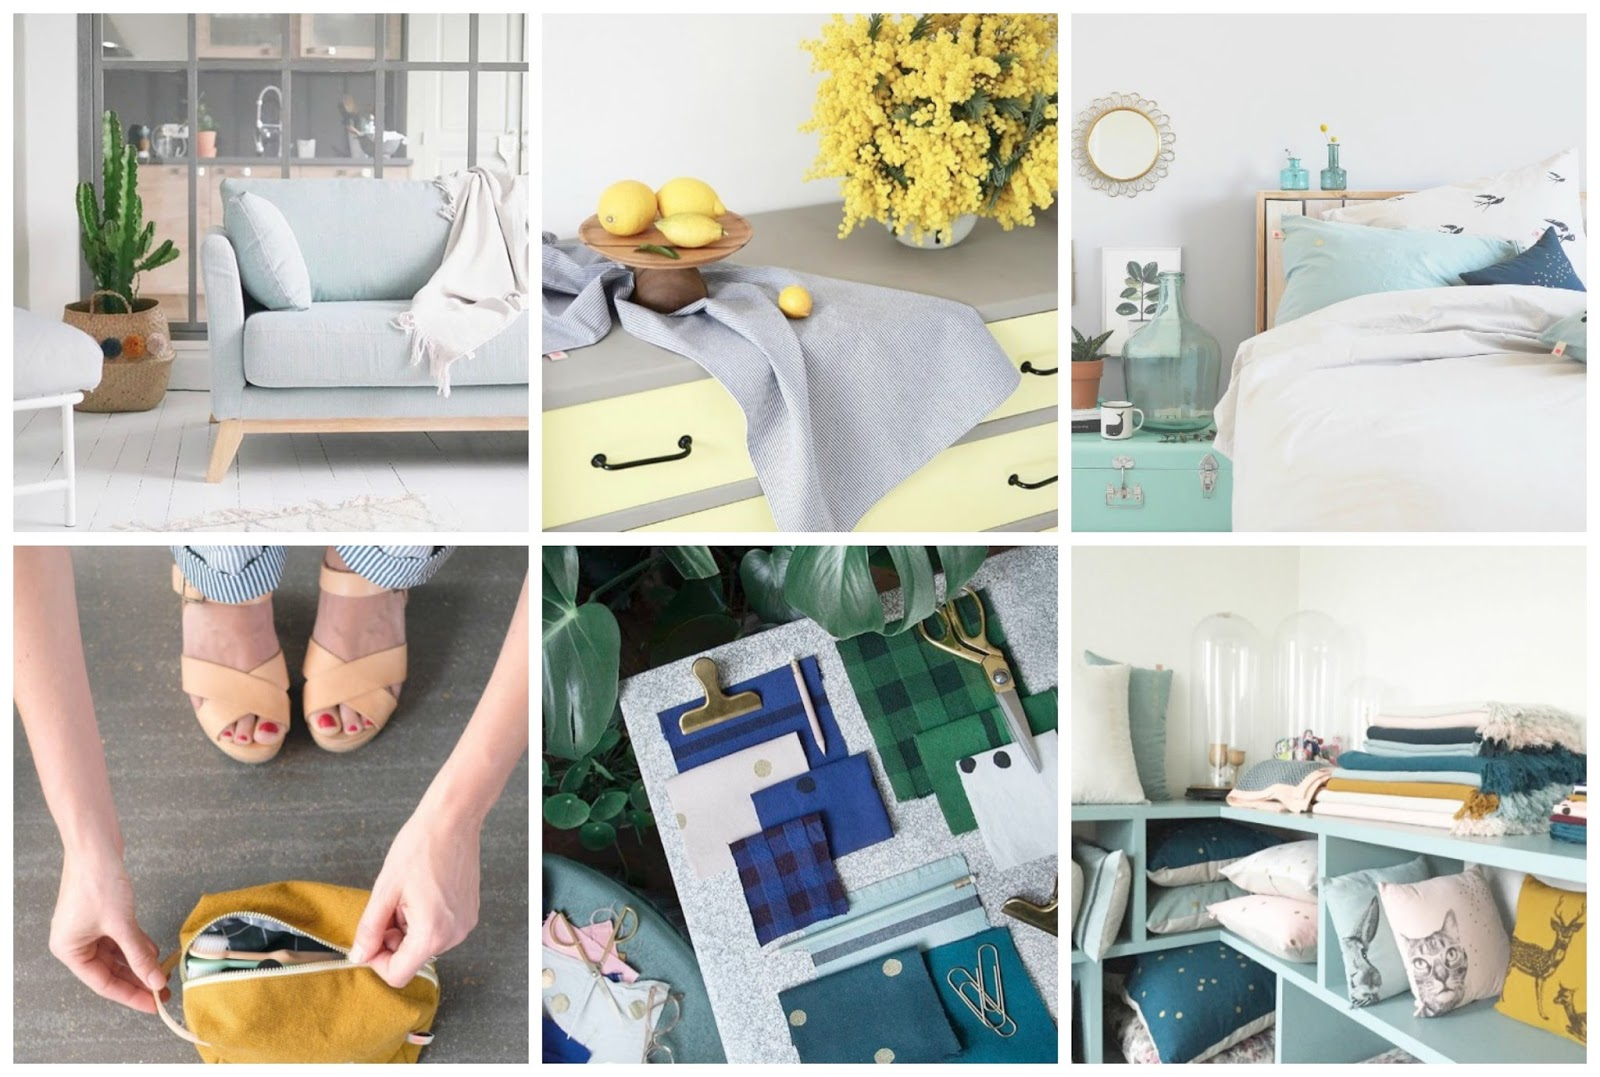 83 Top Interior Design Hashtags On Instagram Instagram Favourites Currently Loving Stars